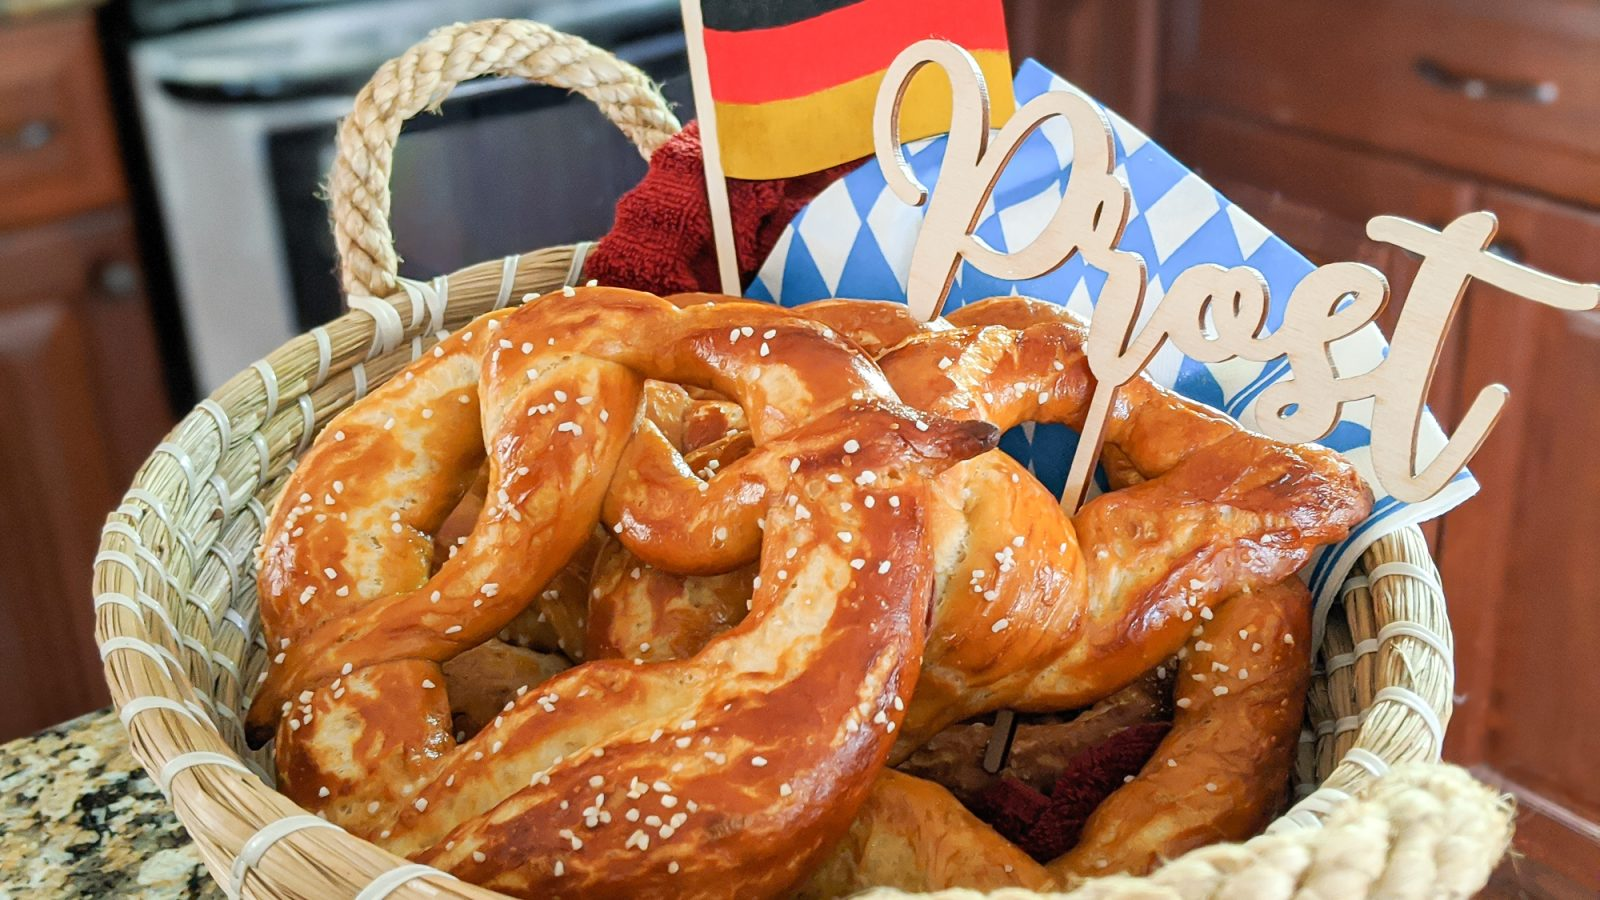 The perfect Oktoberfest party foods for your oktoberfest-themed party at home | #oktoberfest #oktoberfestfood #germanfood #germanrecipes #pretzels